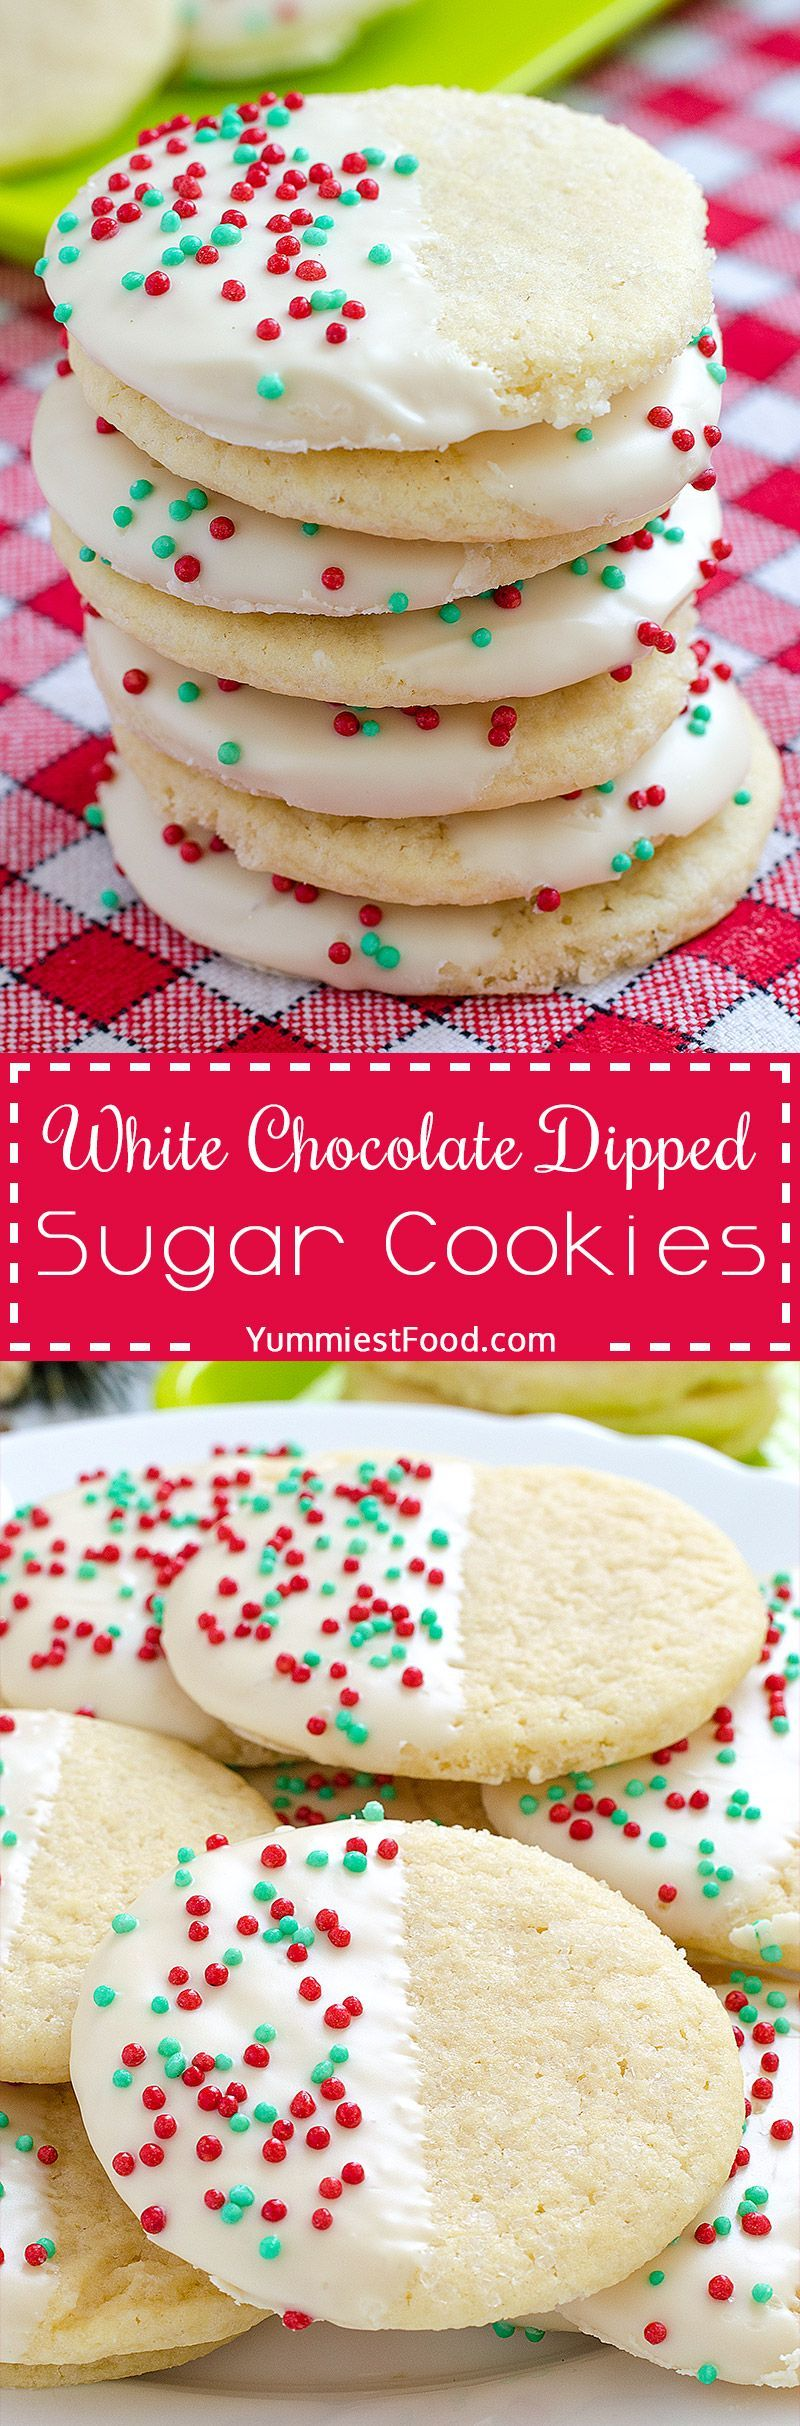 Chocolate Dipped Sugar Cookies White Chocolate Dipped Sugar Cookies - a Christmas cookies must! So delicious, cute and very easy to make.. You need only few ingredients for these White Chocolate Dipped Sugar Cookies!White Chocolate Dipped Sugar Cookies - a Christmas cookies must! So delicious, cute and very easy to make.. You need only few ingredients for these Whit...